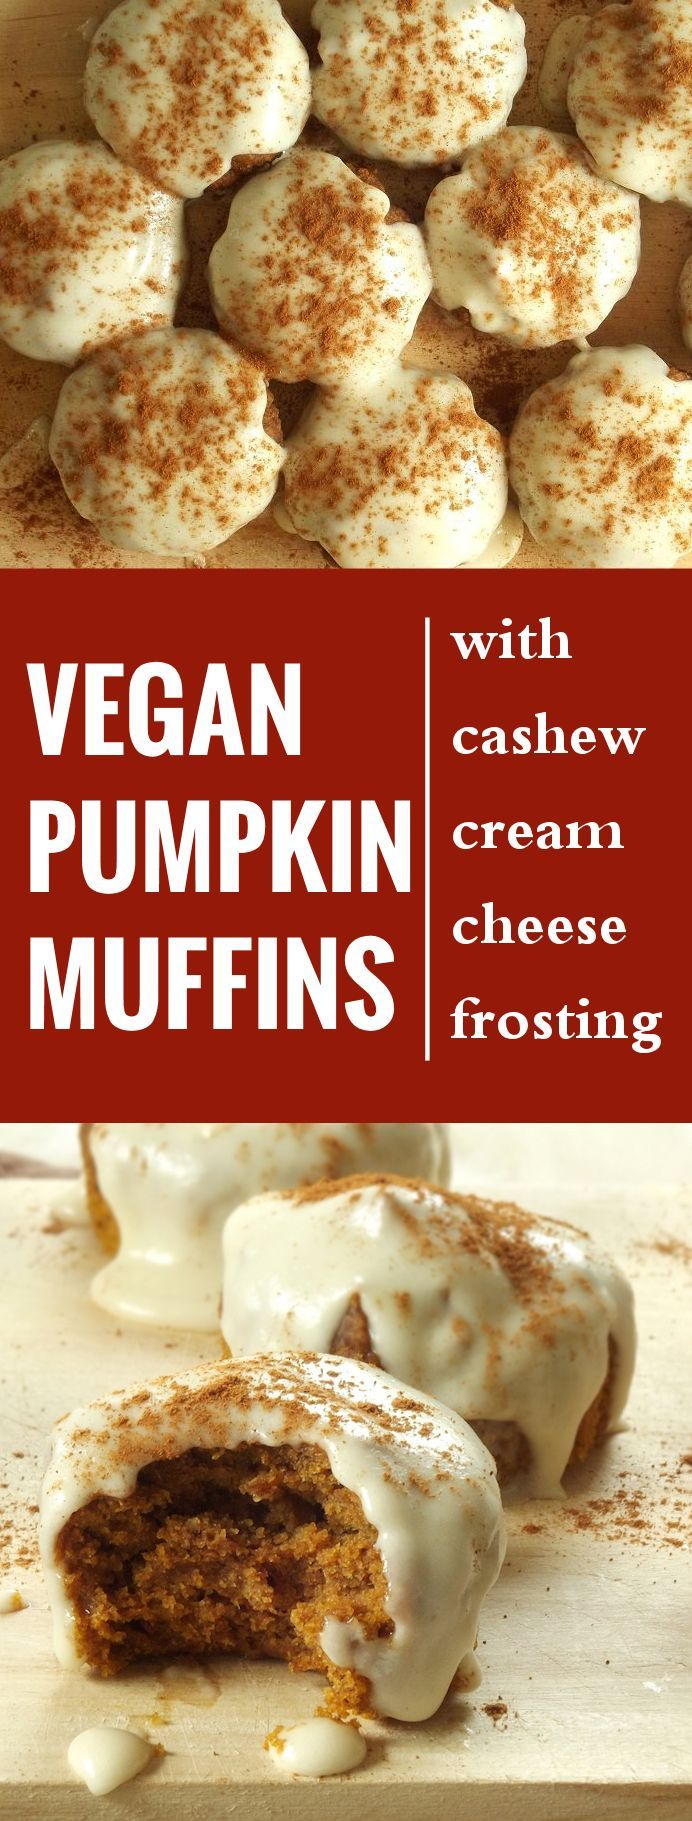 These vegan pumpkin muffins are rich, moist, packed with the flavors of pumpkin and fall spices, and topped with a…